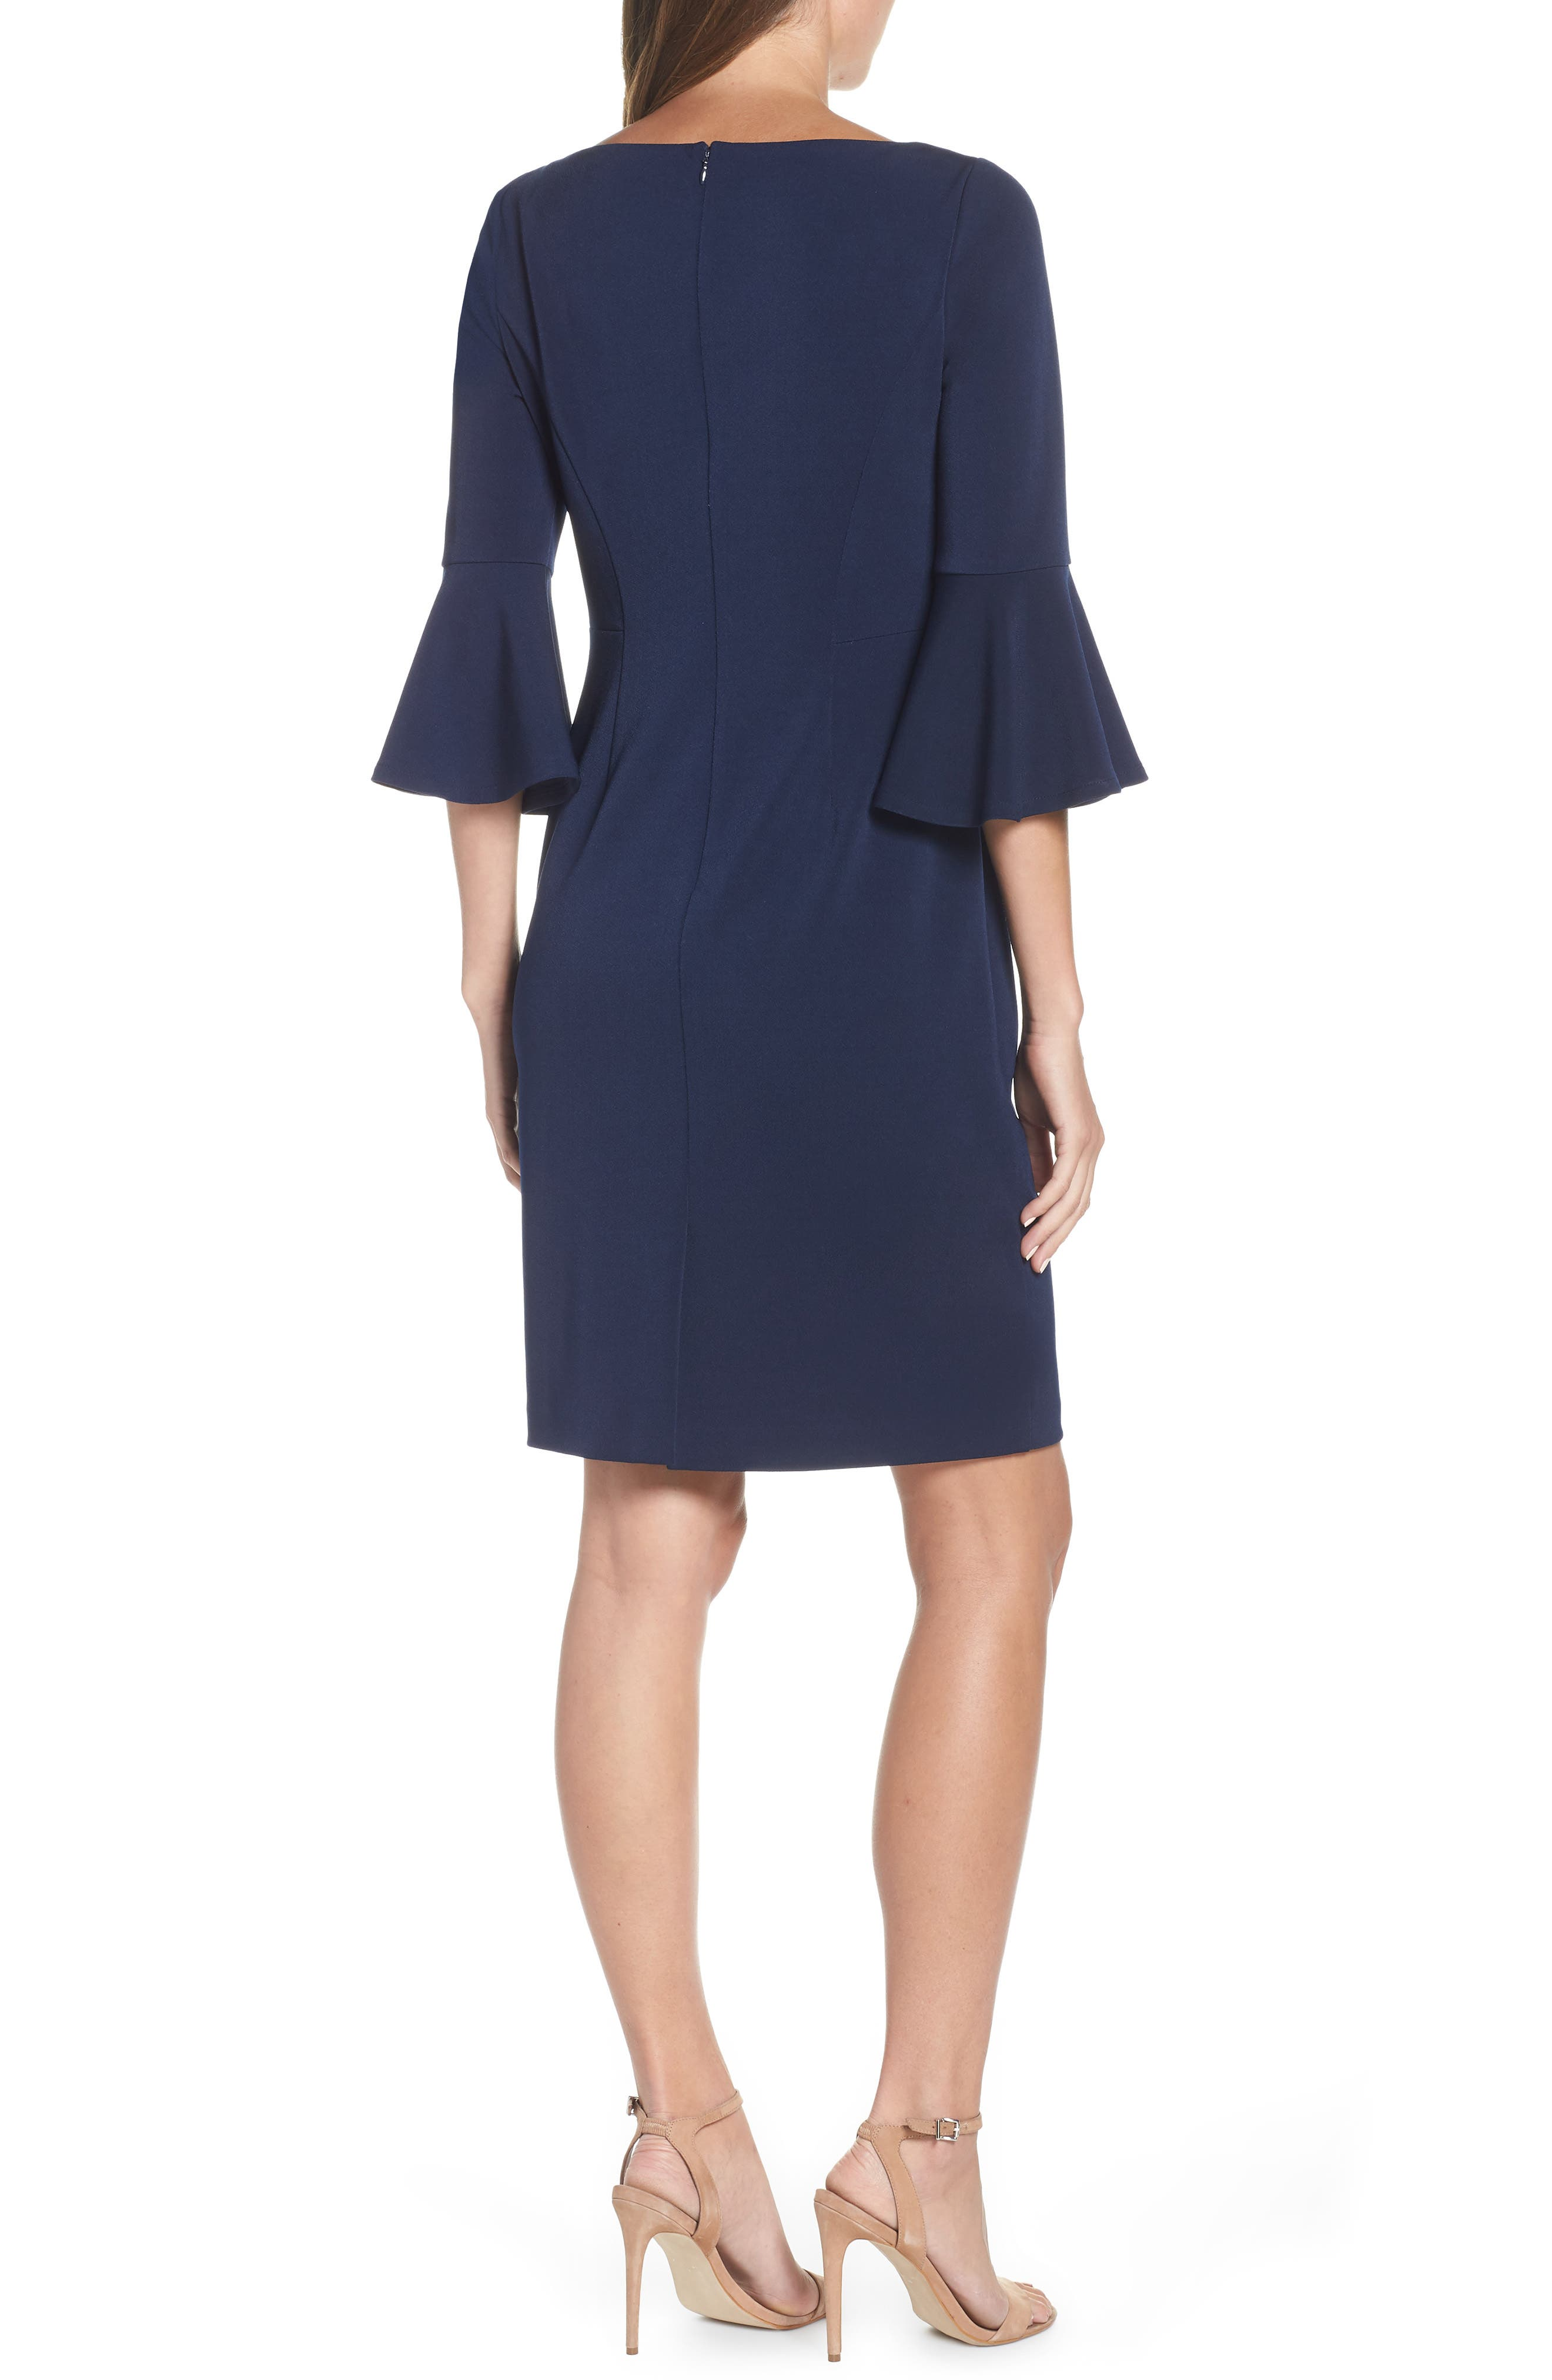 HARPER ROSE,                             Bell Sleeve Bateau Neck Sheath Dress,                             Alternate thumbnail 2, color,                             NAVY